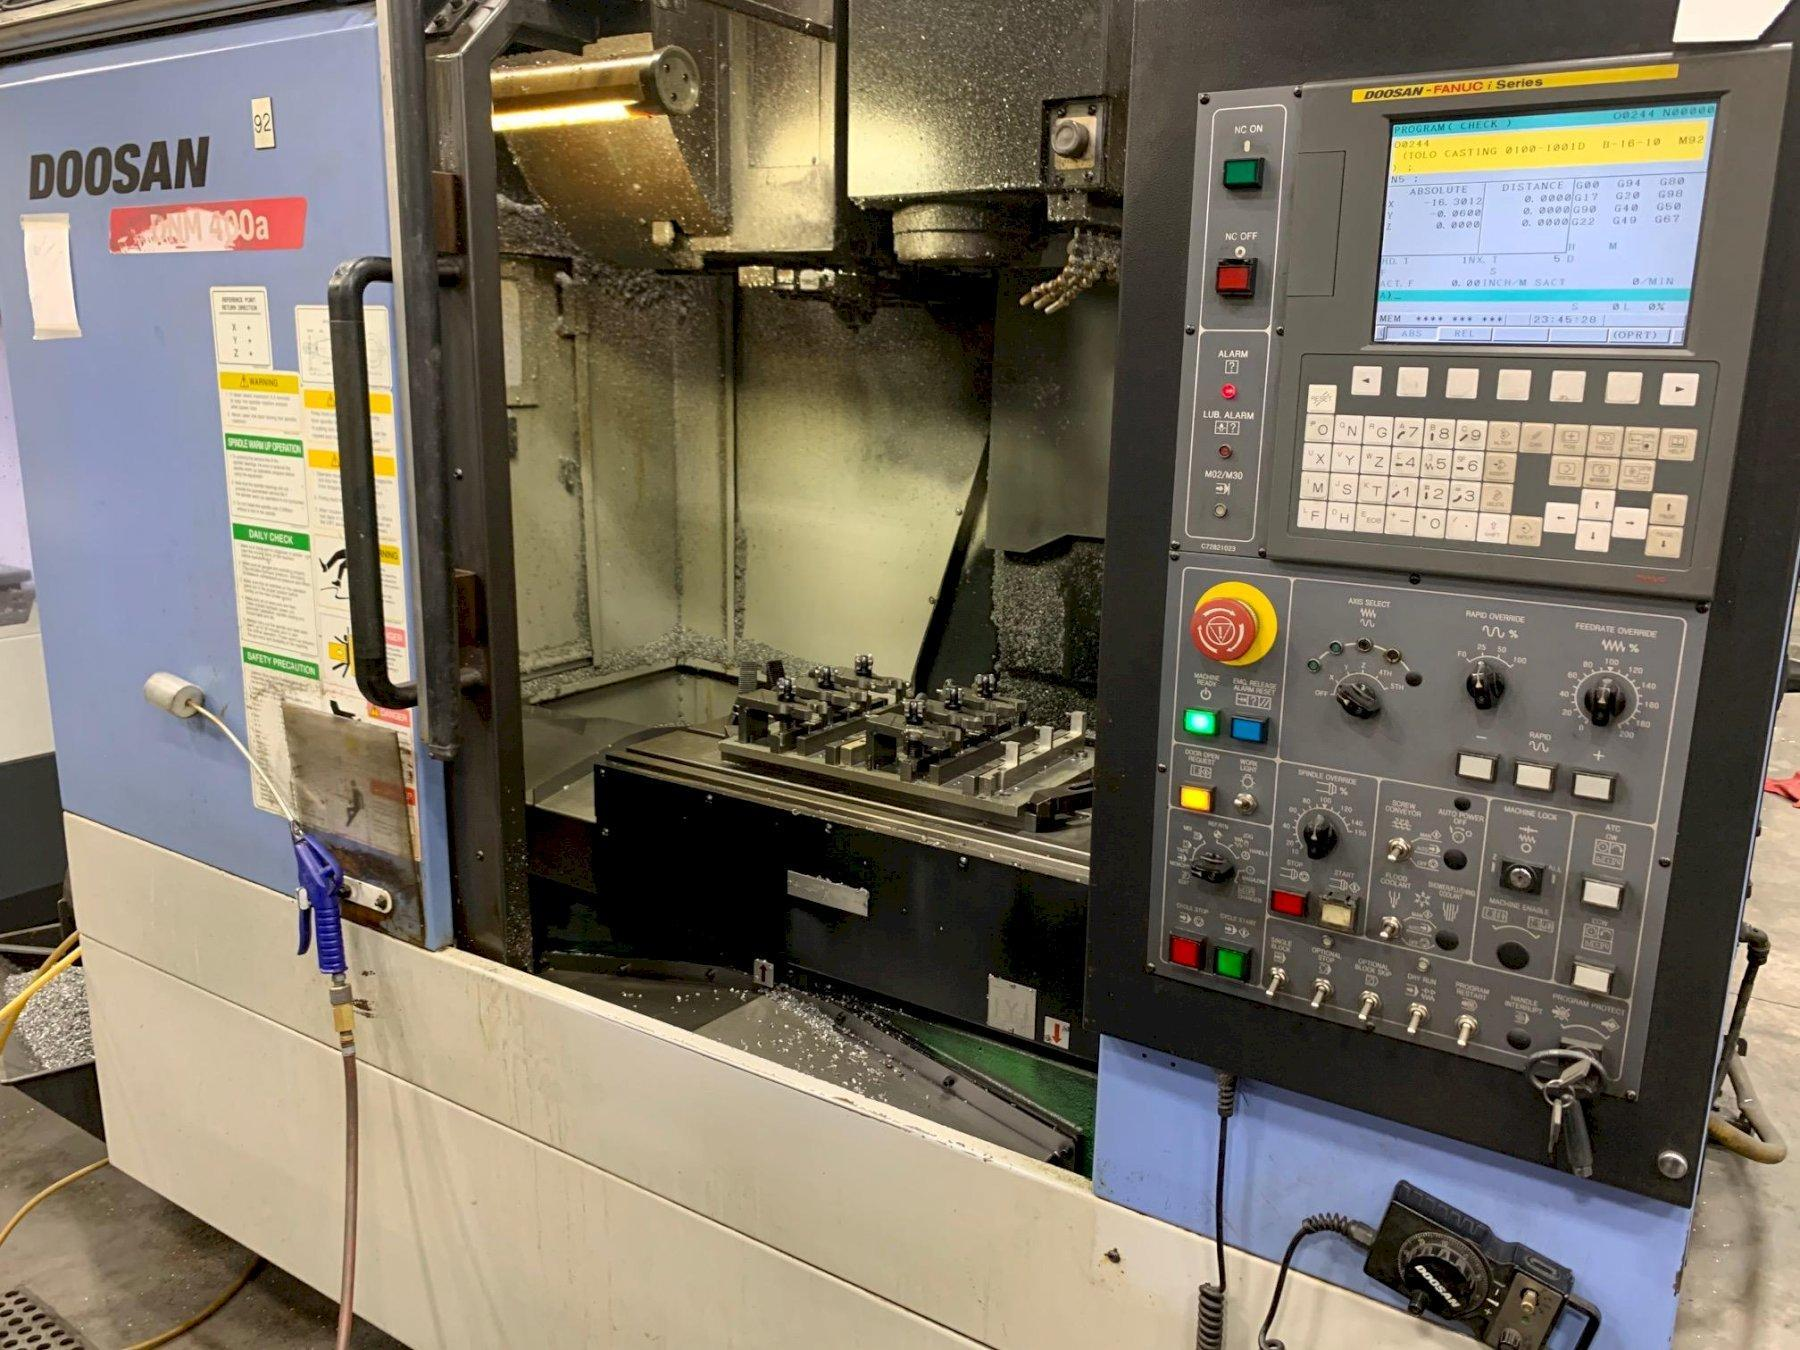 Doosan DMV 400A CNC Vertical Machining Center, New 2010